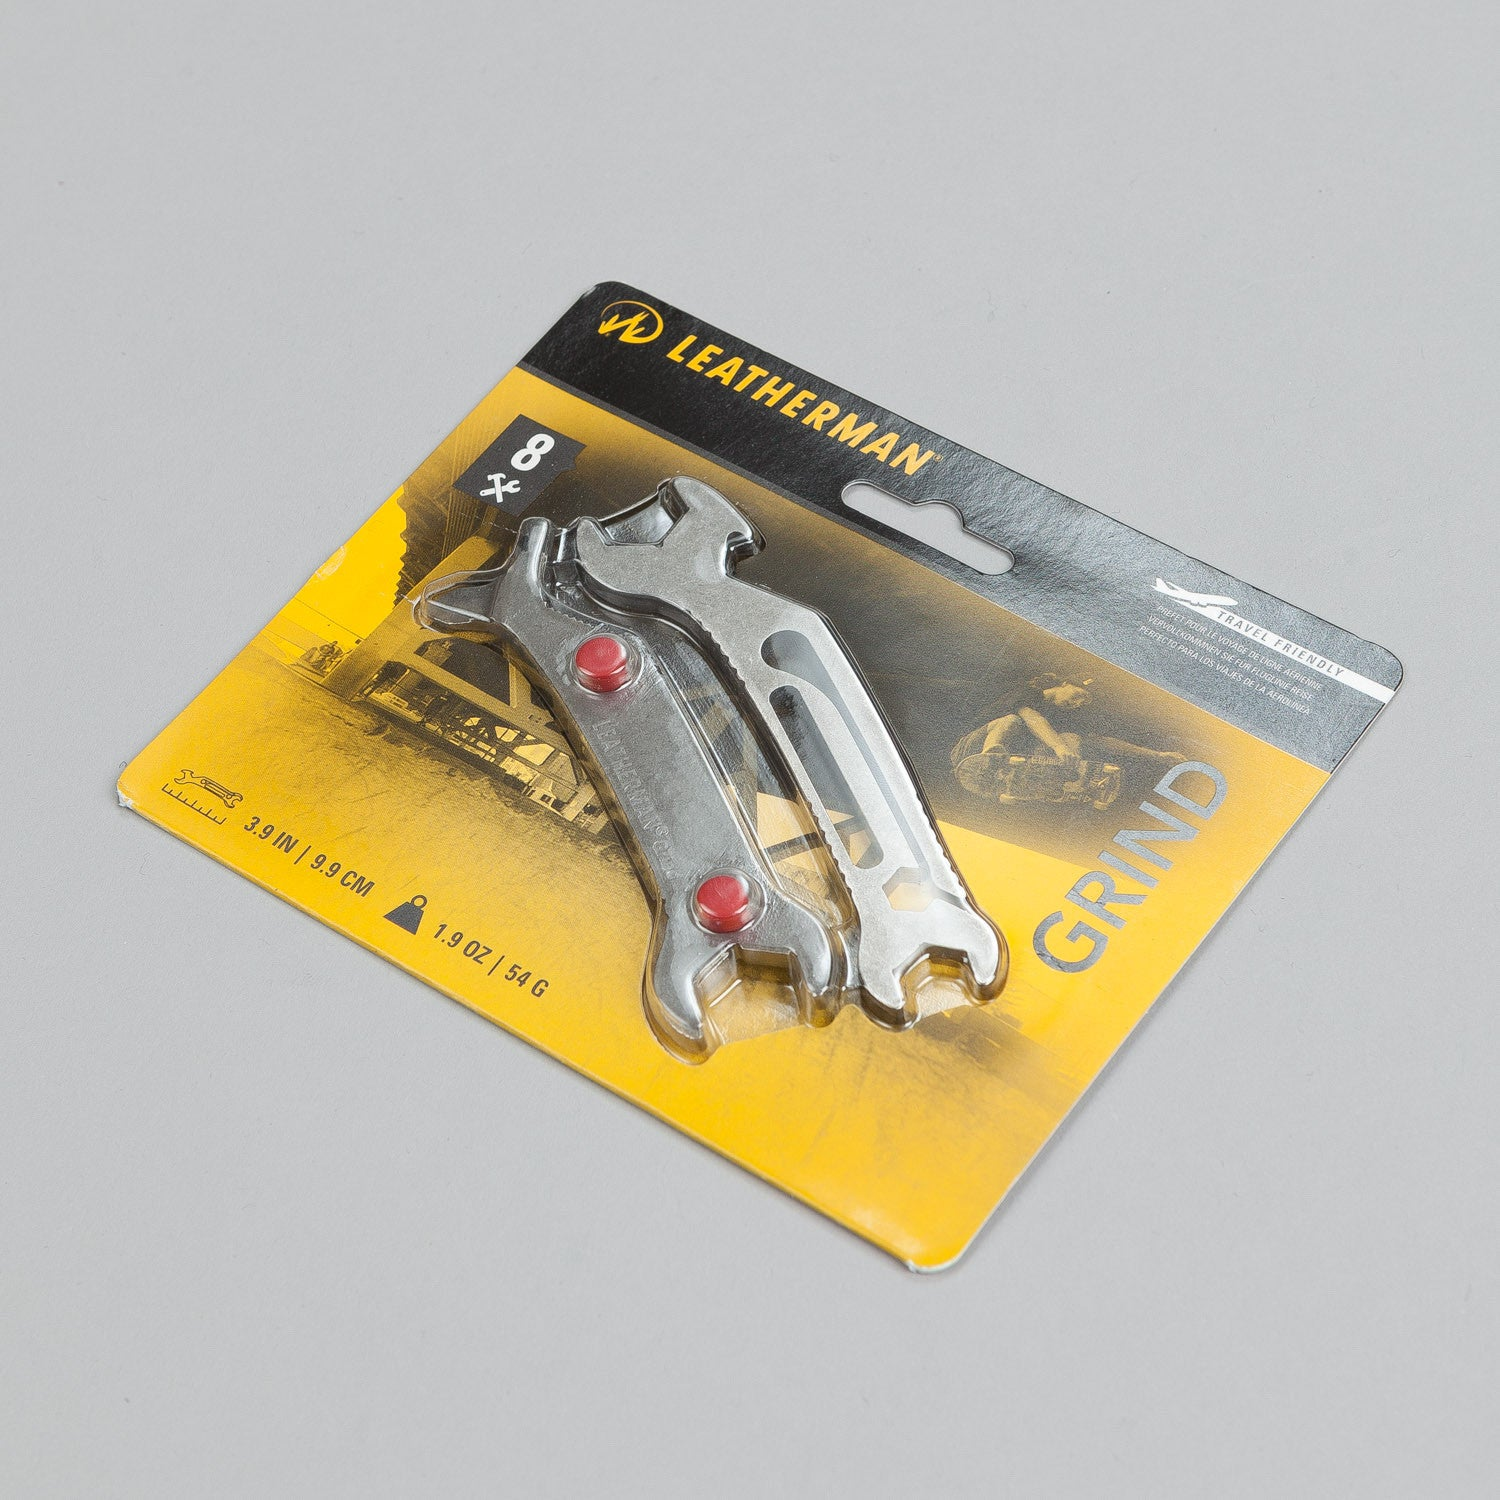 Leatherman Grind - 8 Tools In One